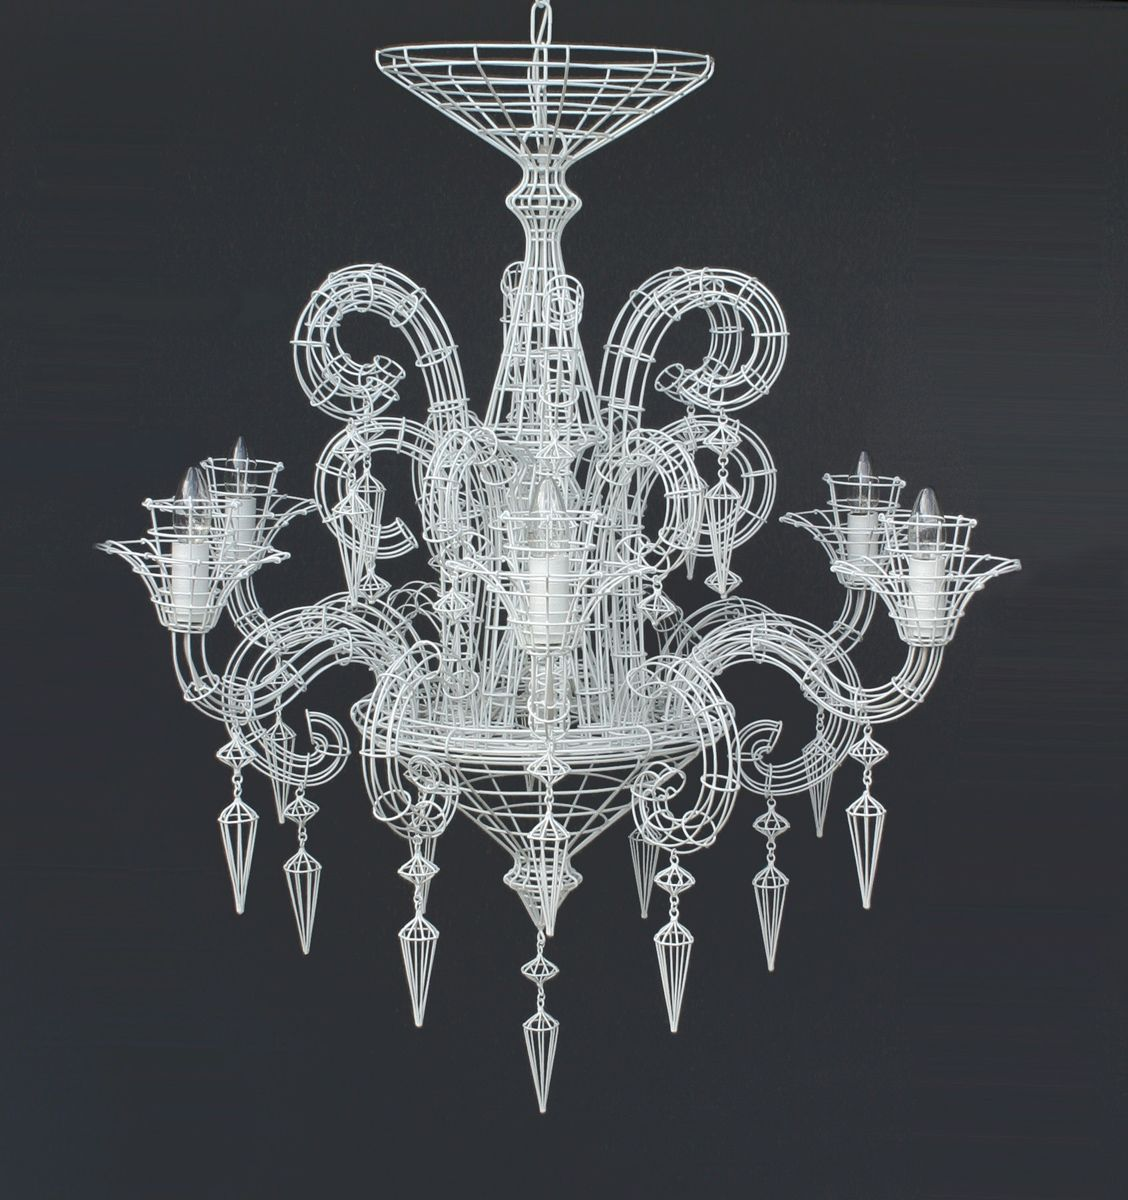 Biju grand french wire chandelier white lighting pinterest find this pin and more on lighting wire chandelier arubaitofo Images